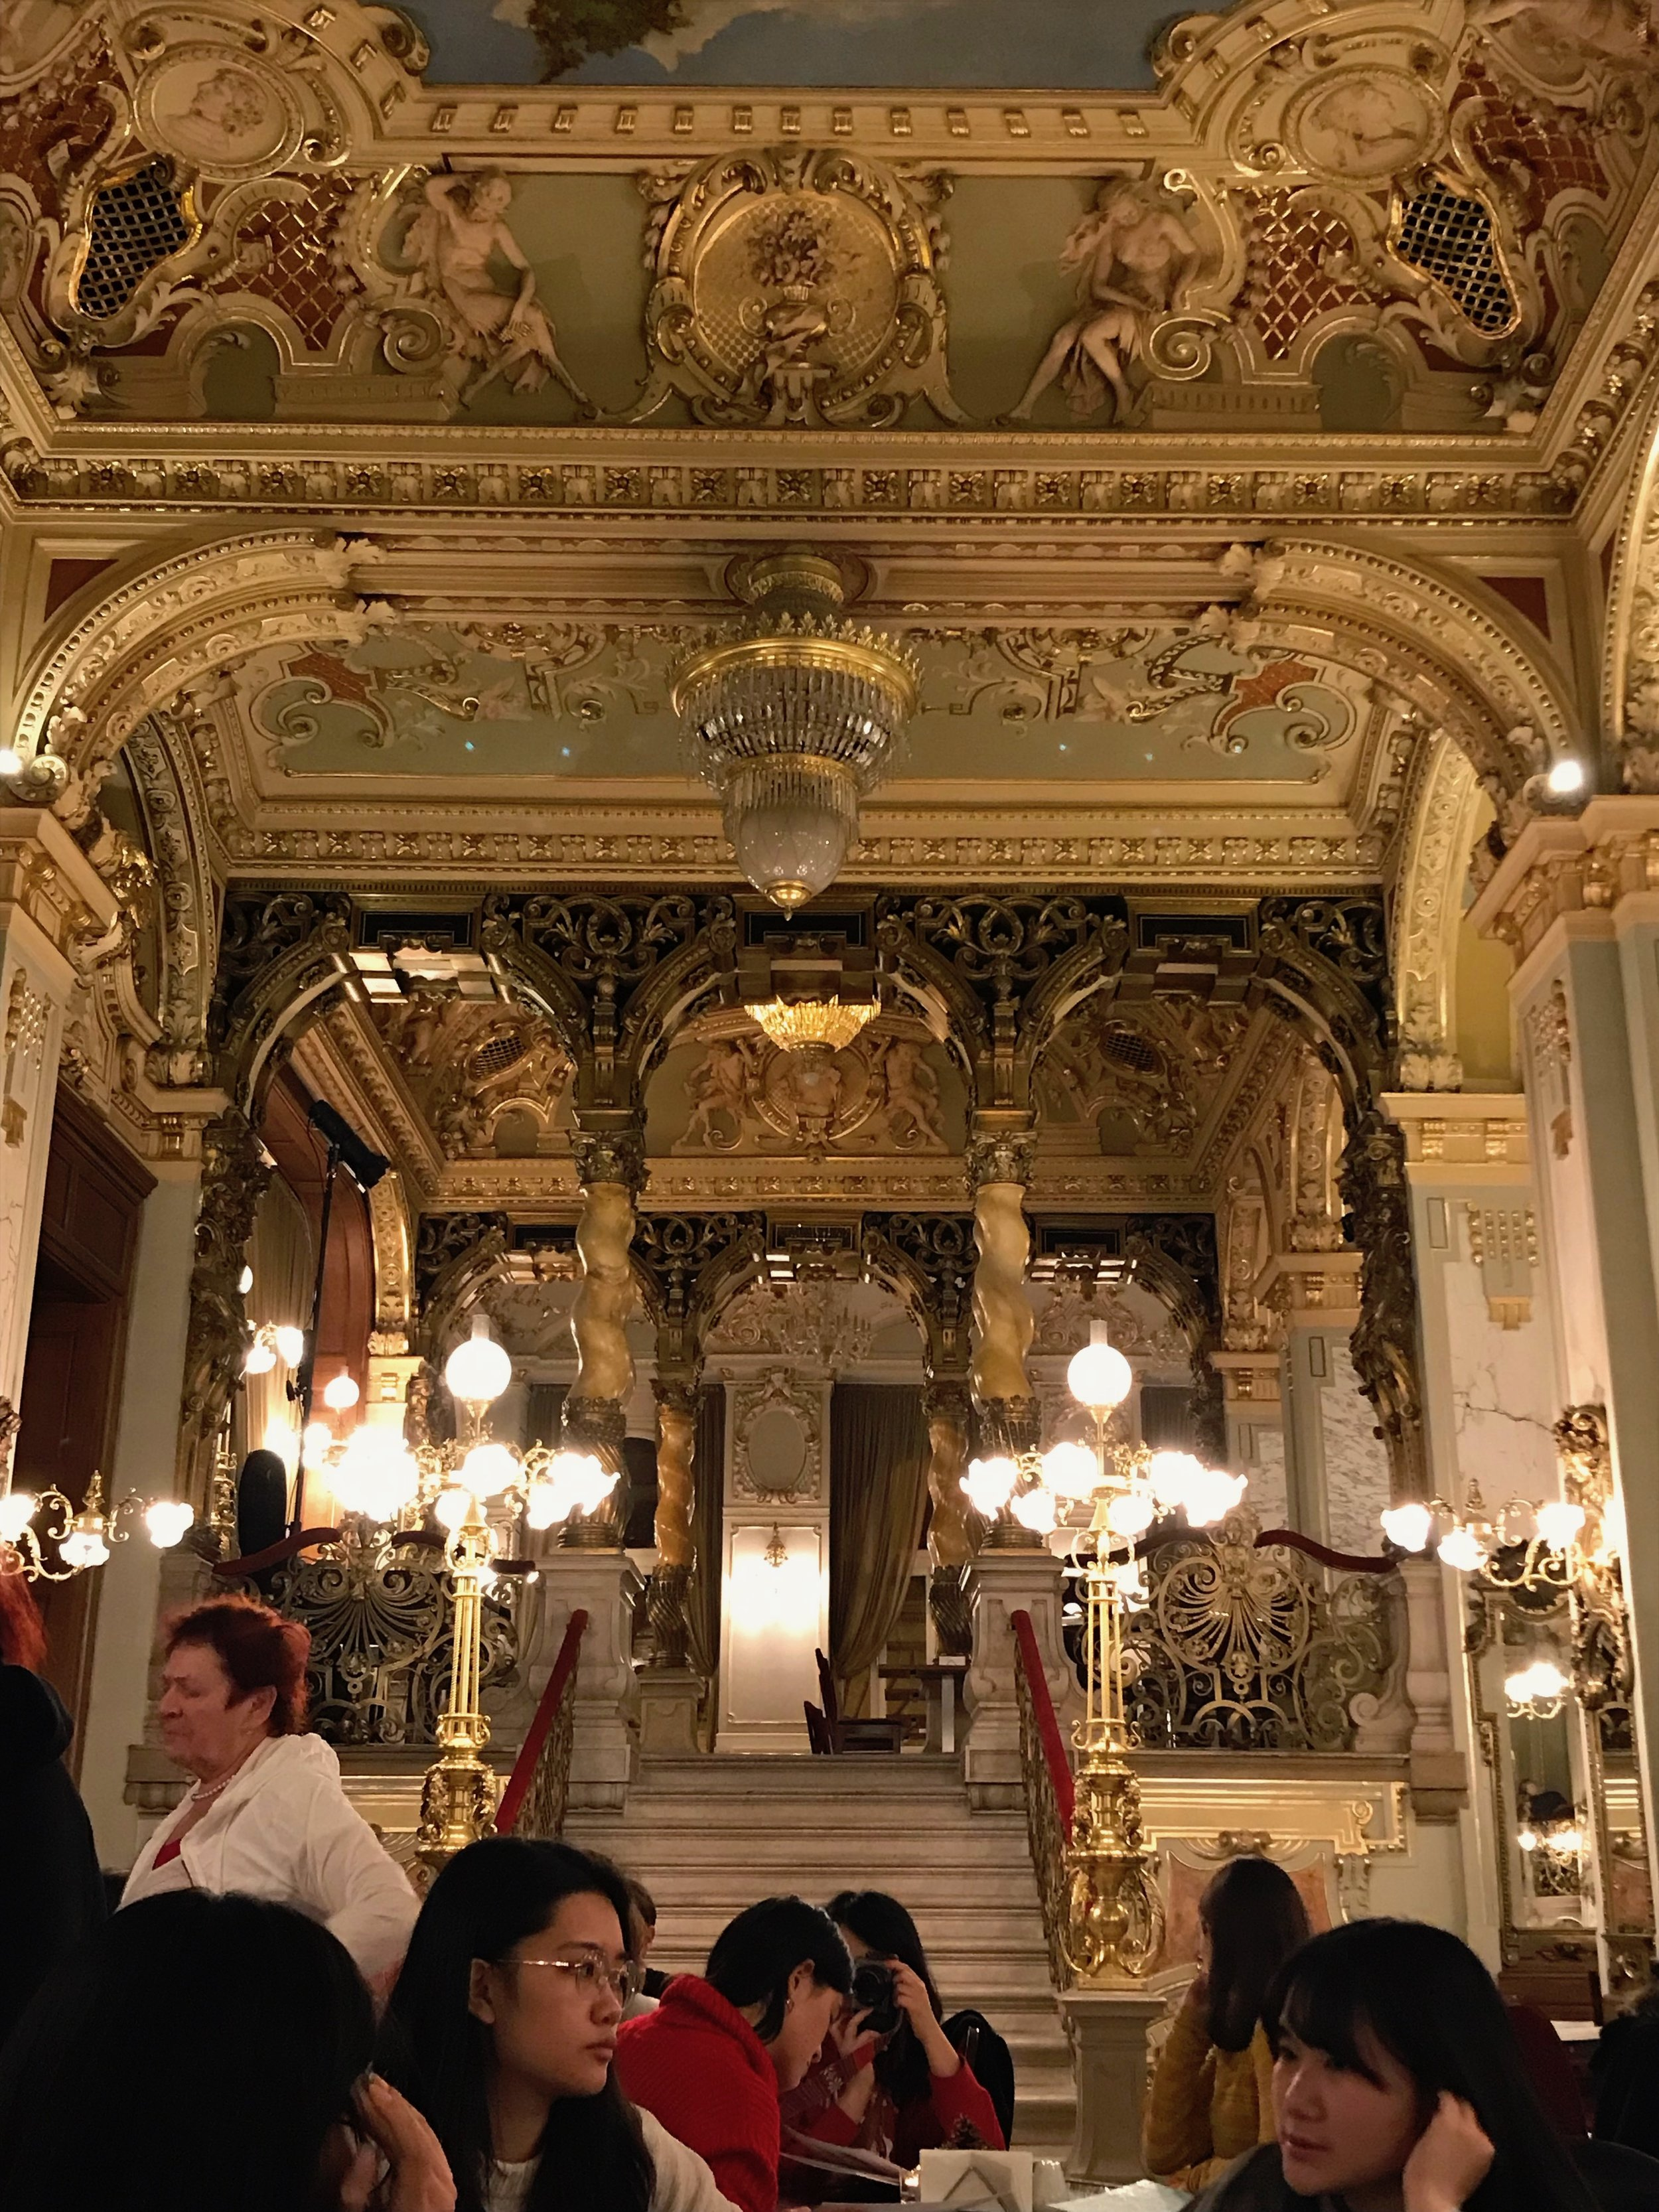 The gloriously ornate interior of the New York Cafe